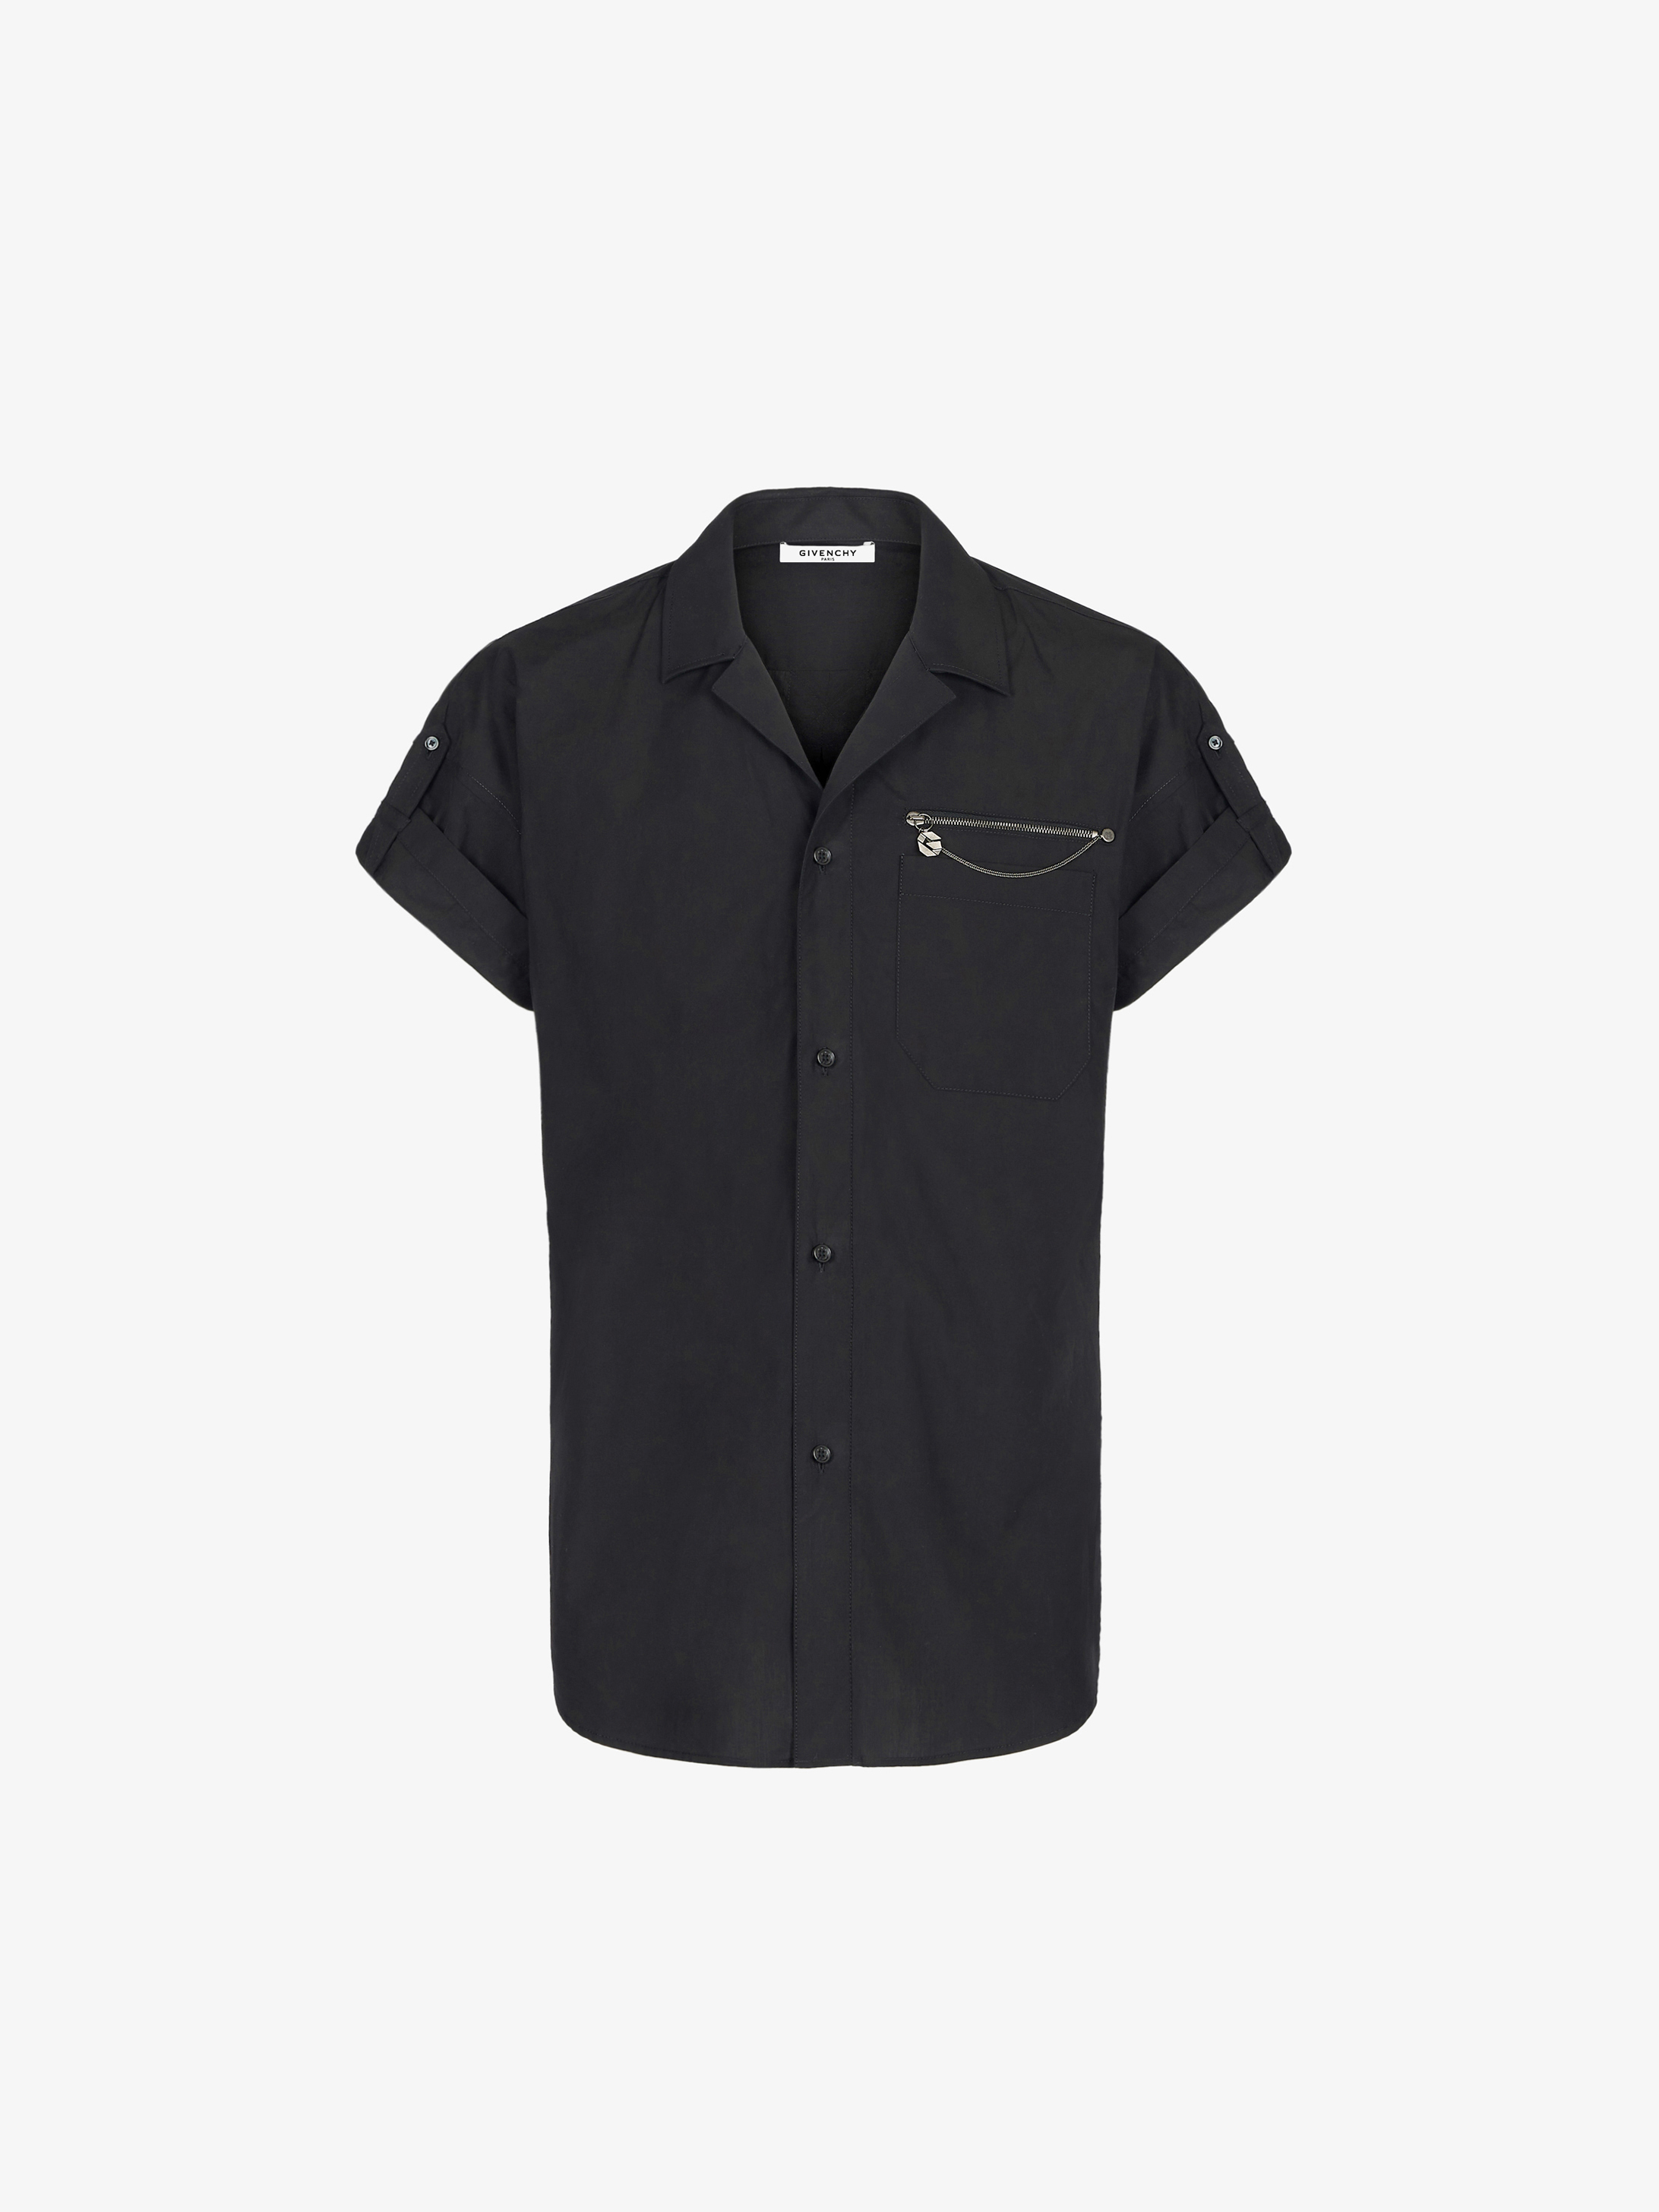 Shirt with adjustable sleeves and G chain